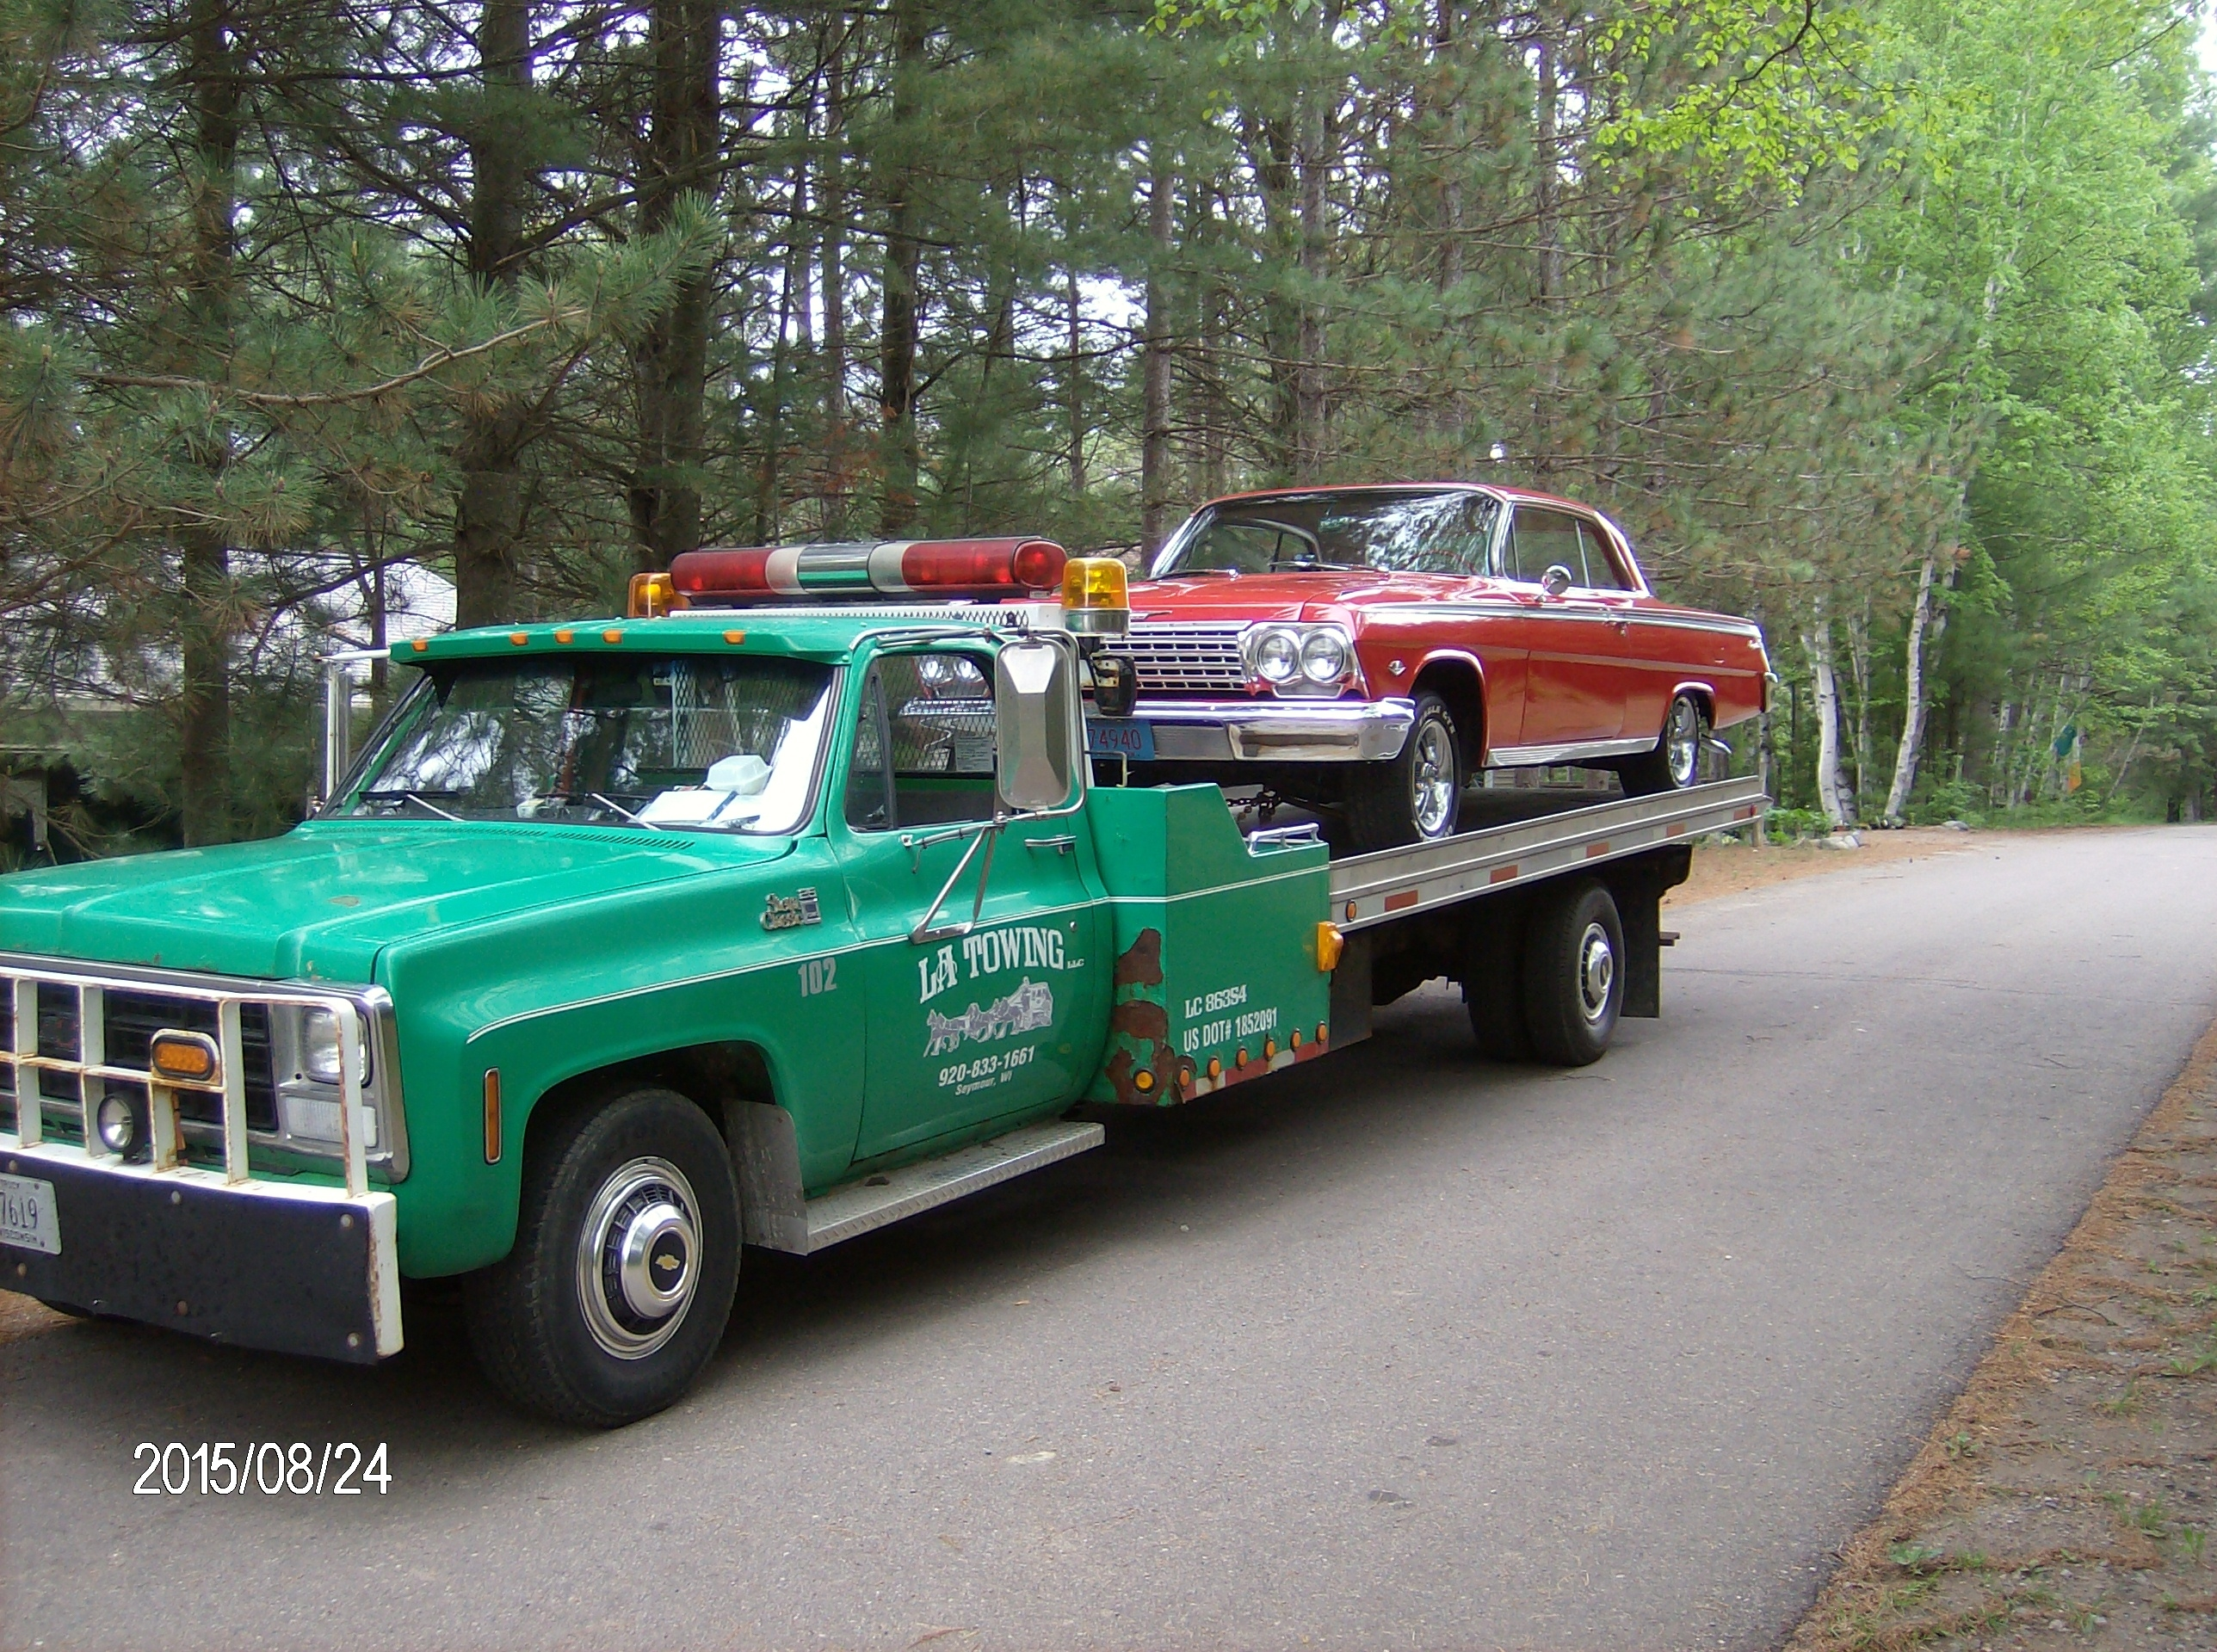 LA Towing & Recovery, LLC image 2